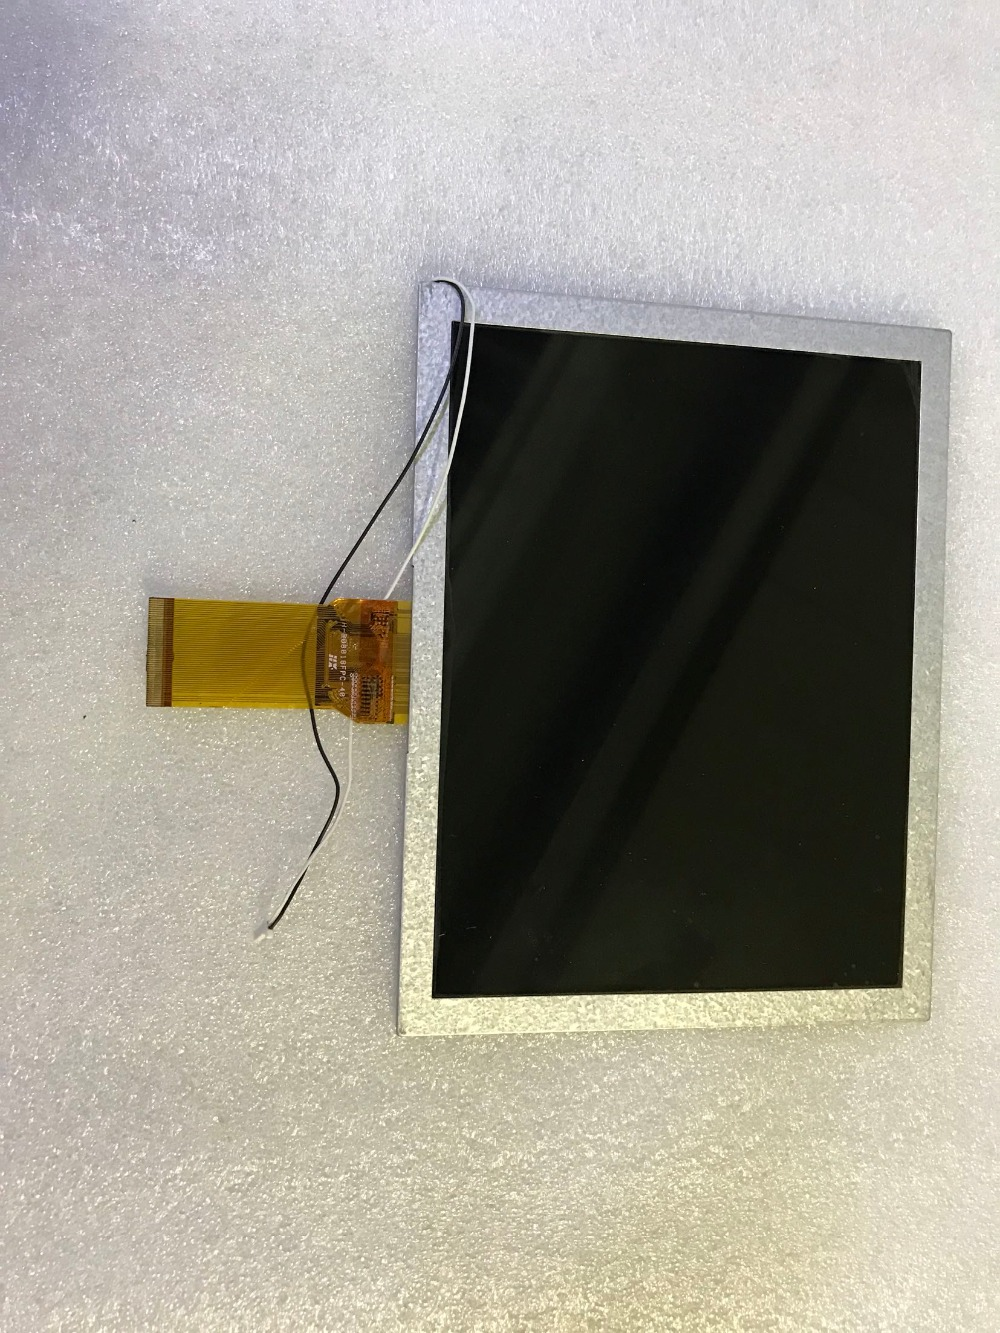 free shipping Original New 8 inch LCD screen original cable Model: H-B08018FPC-40 free shipping original 9 7 inch lcd screen original cable number h h09730fpc 31